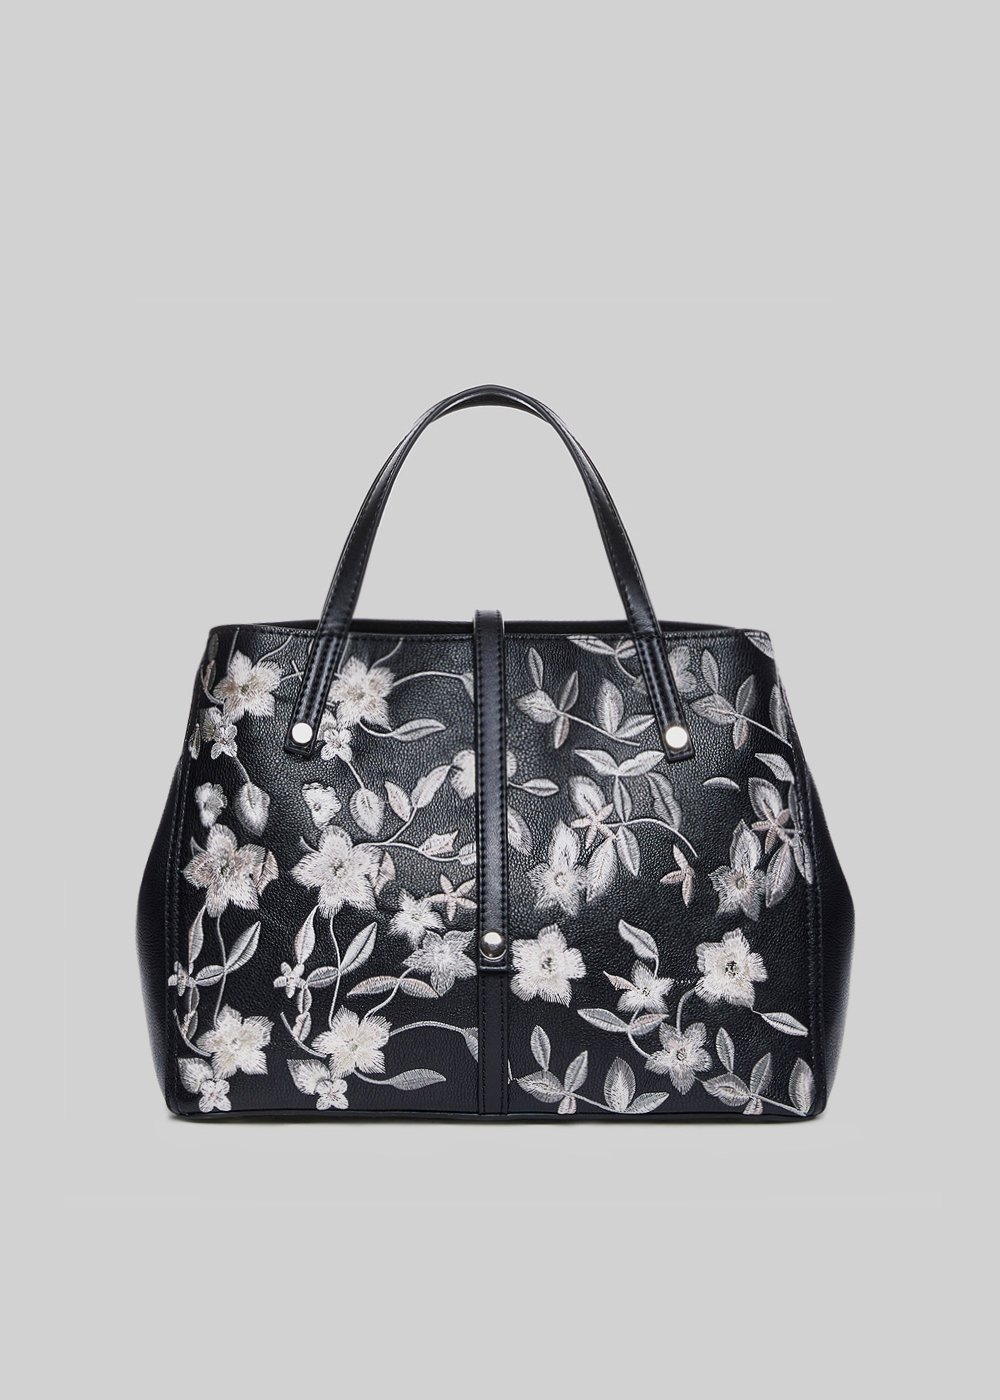 Body bag in faux leather with floral embroidery